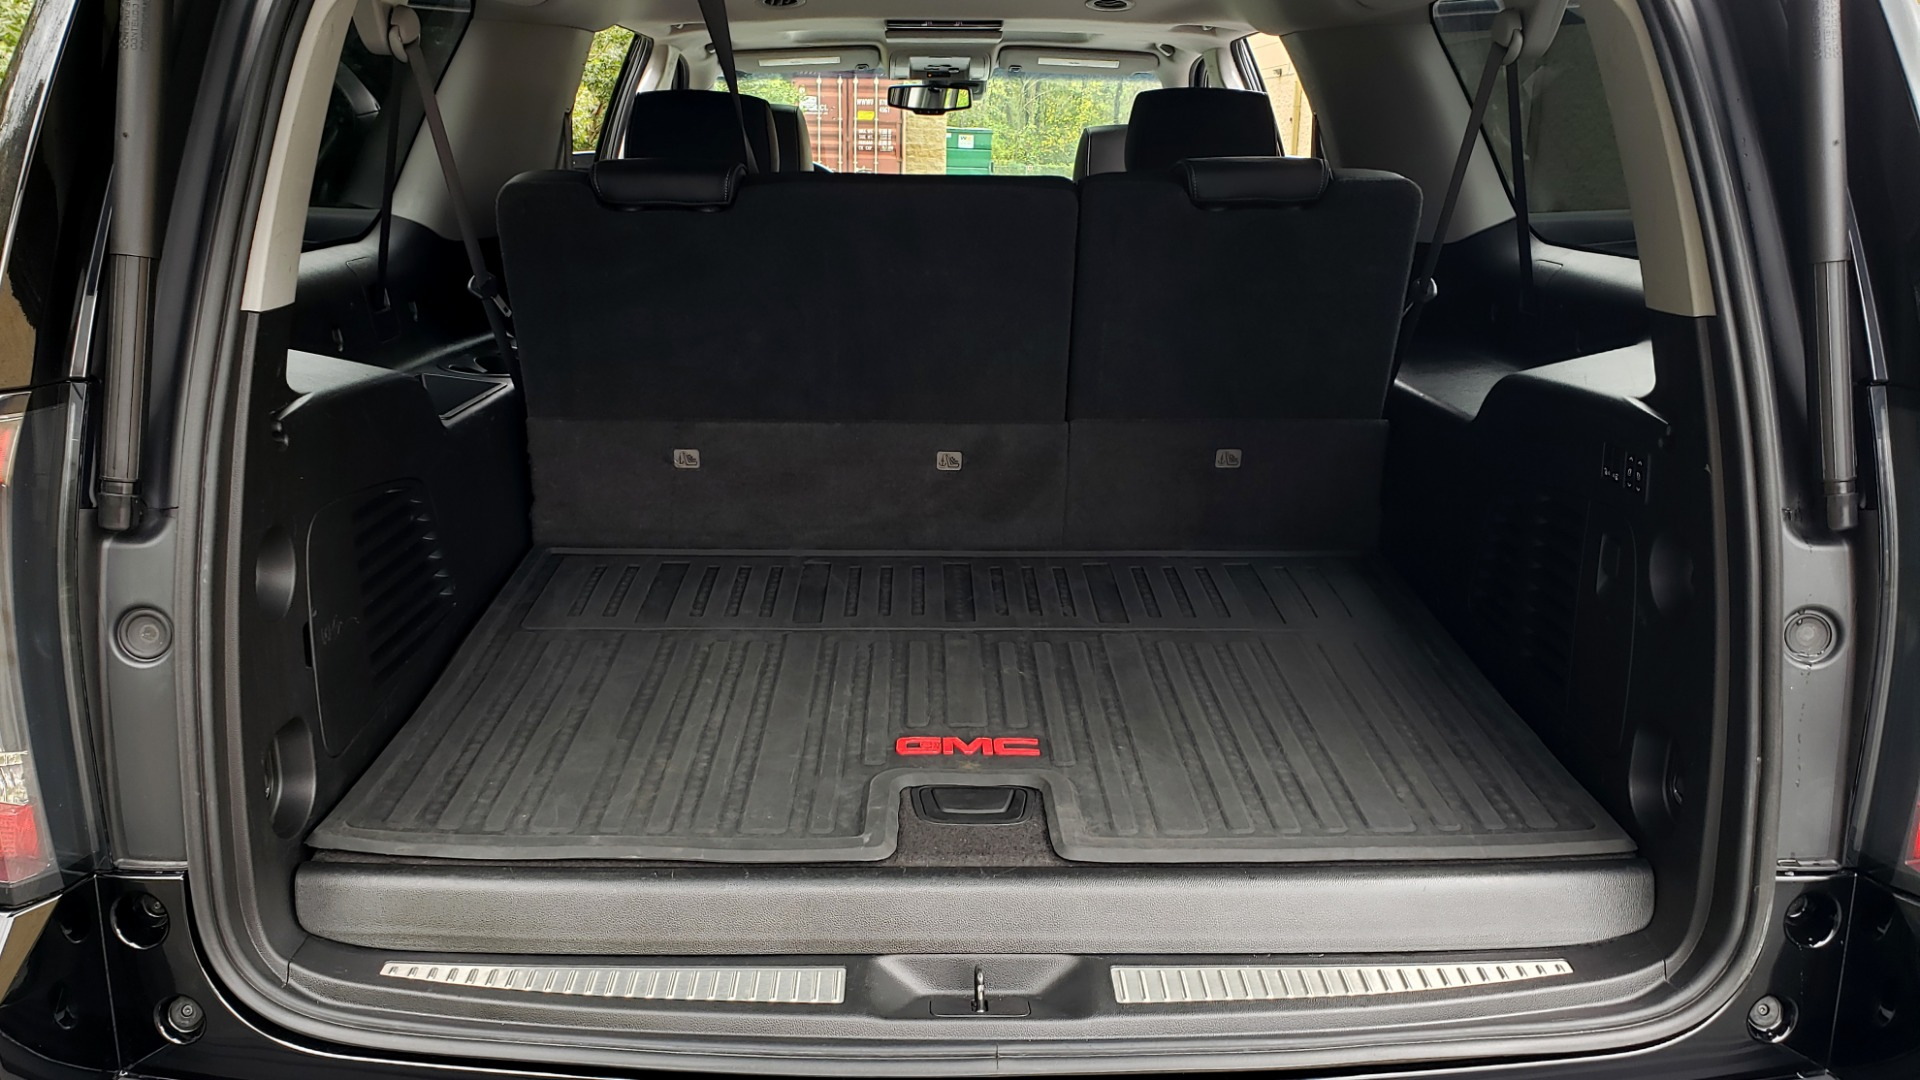 Used 2017 GMC YUKON XL DENALI 4WD / NAV / SUNROOF / ENT / 3-ROWS / BOSE / REARVIEW for sale $48,695 at Formula Imports in Charlotte NC 28227 15